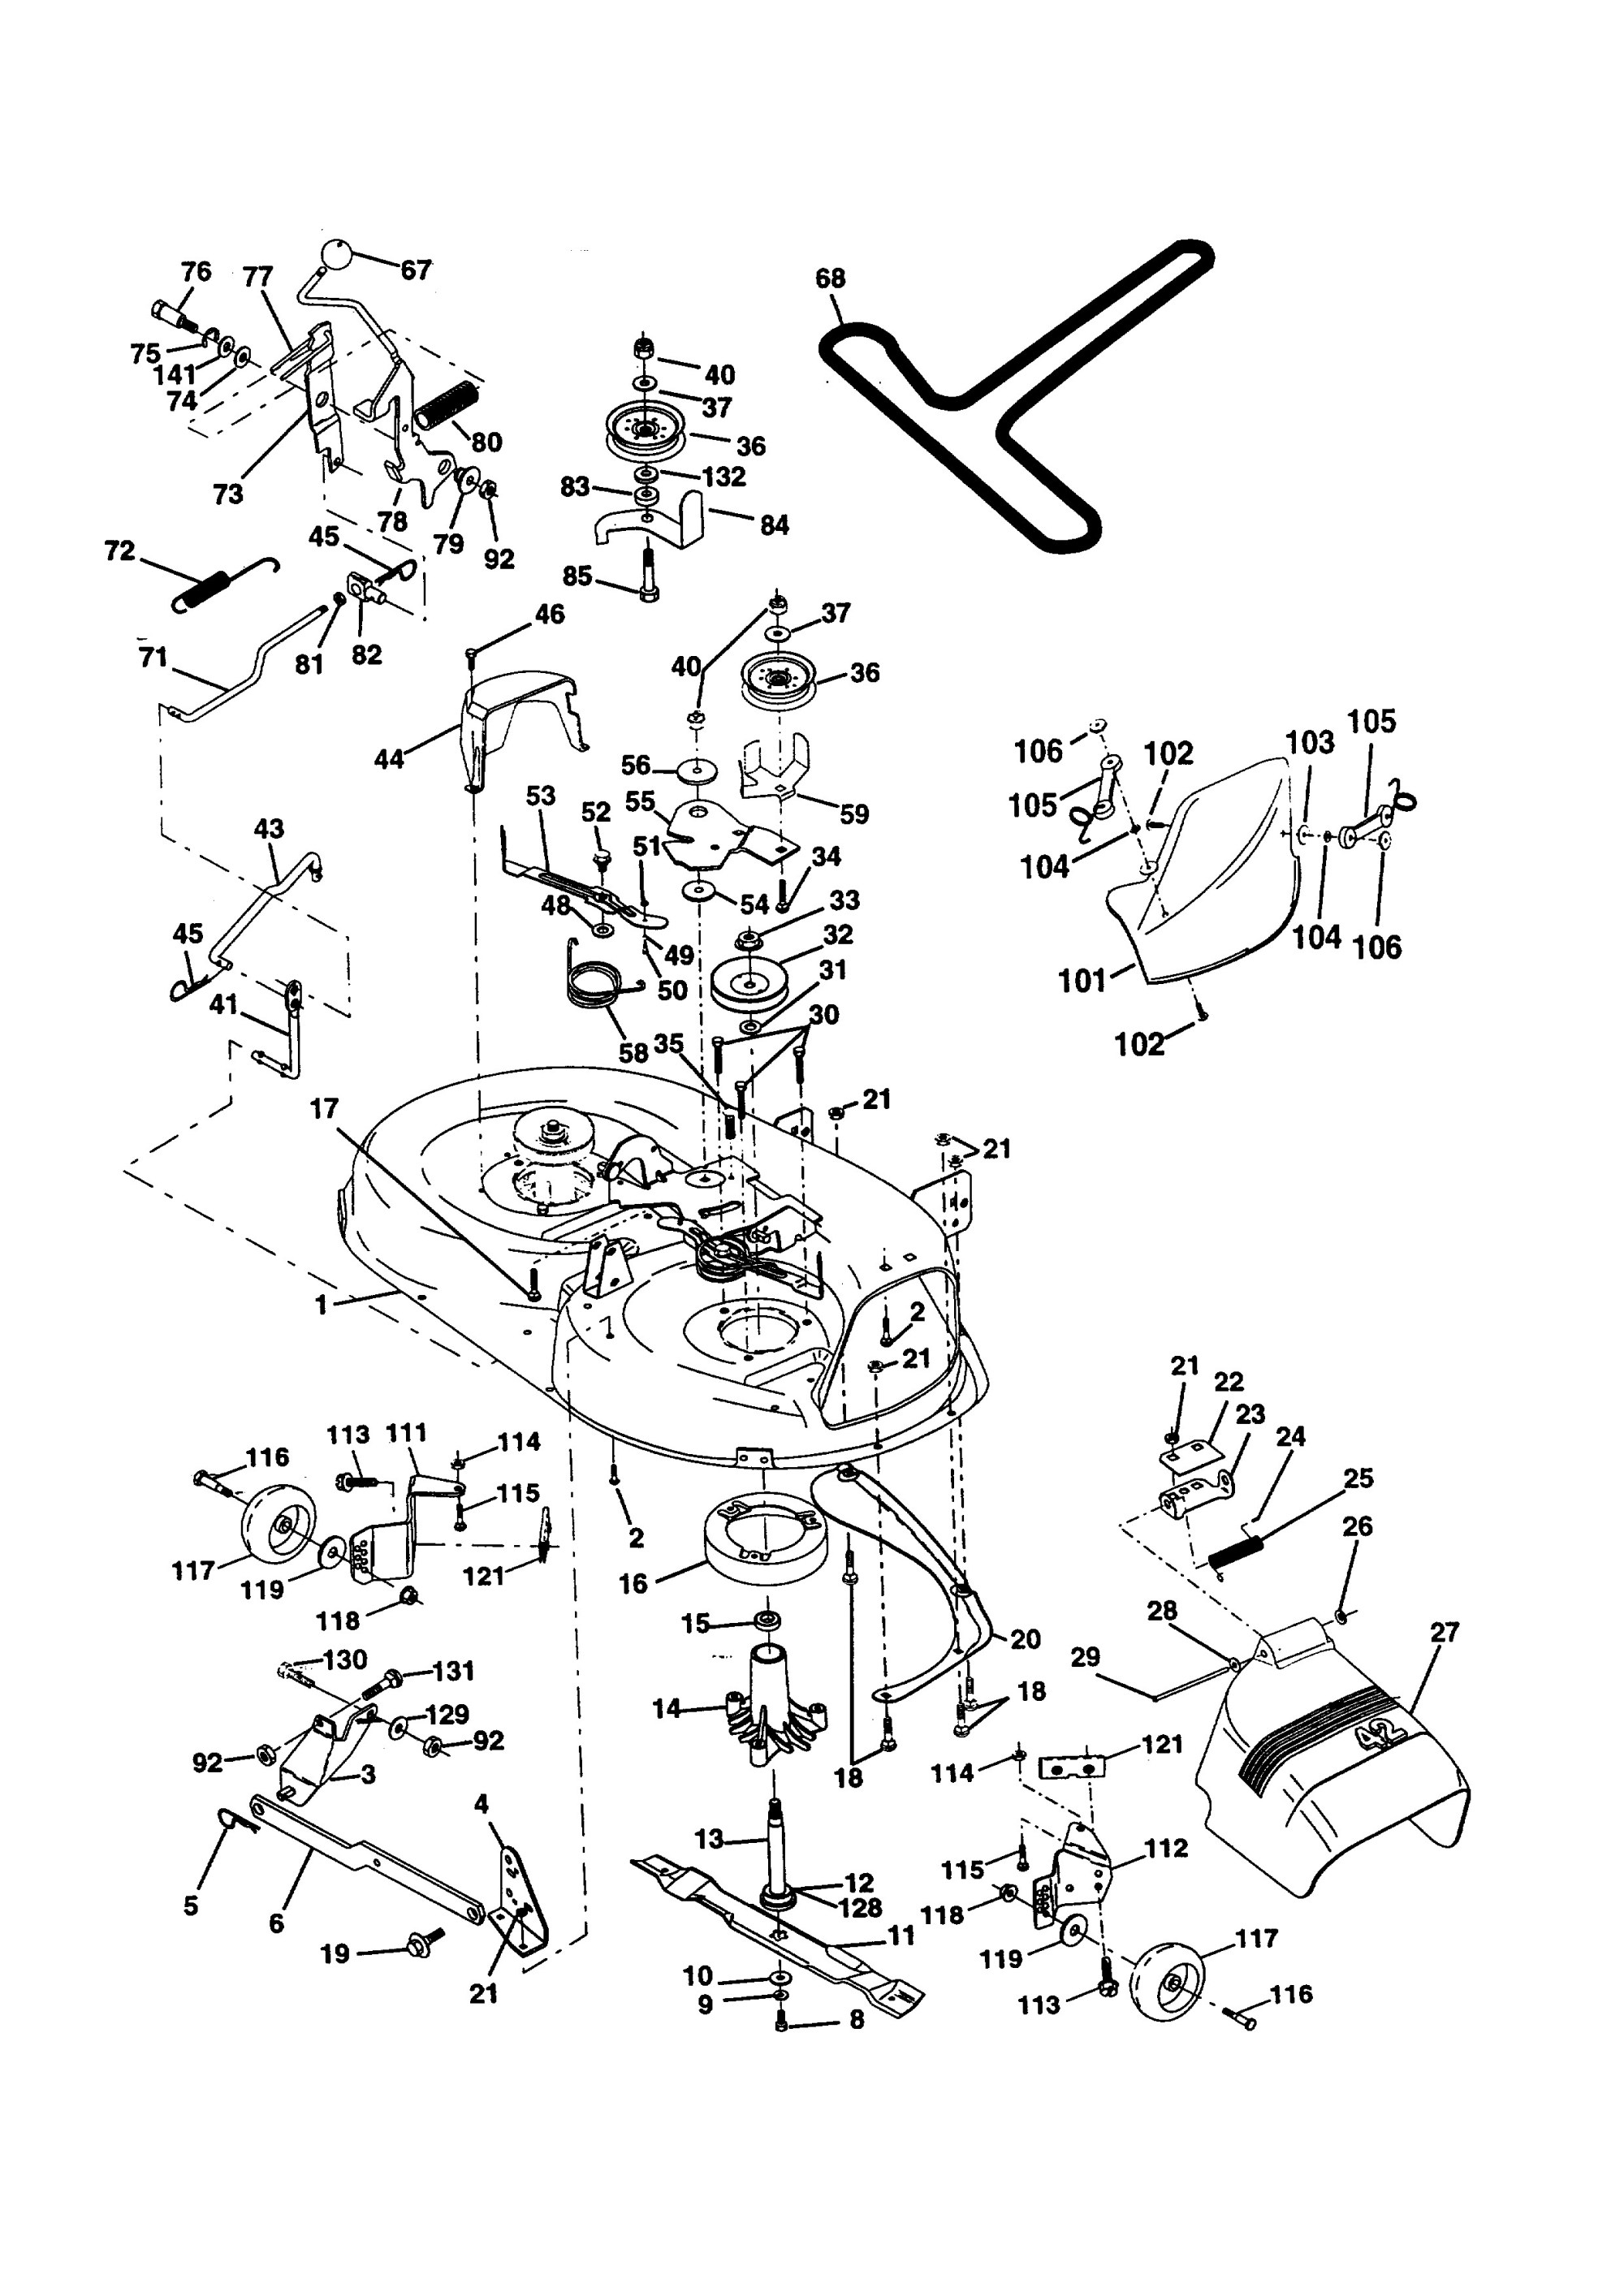 hight resolution of briggs and stratton lawn mower engine parts diagram western auto model ayp9187b89 lawn tractor genuine parts